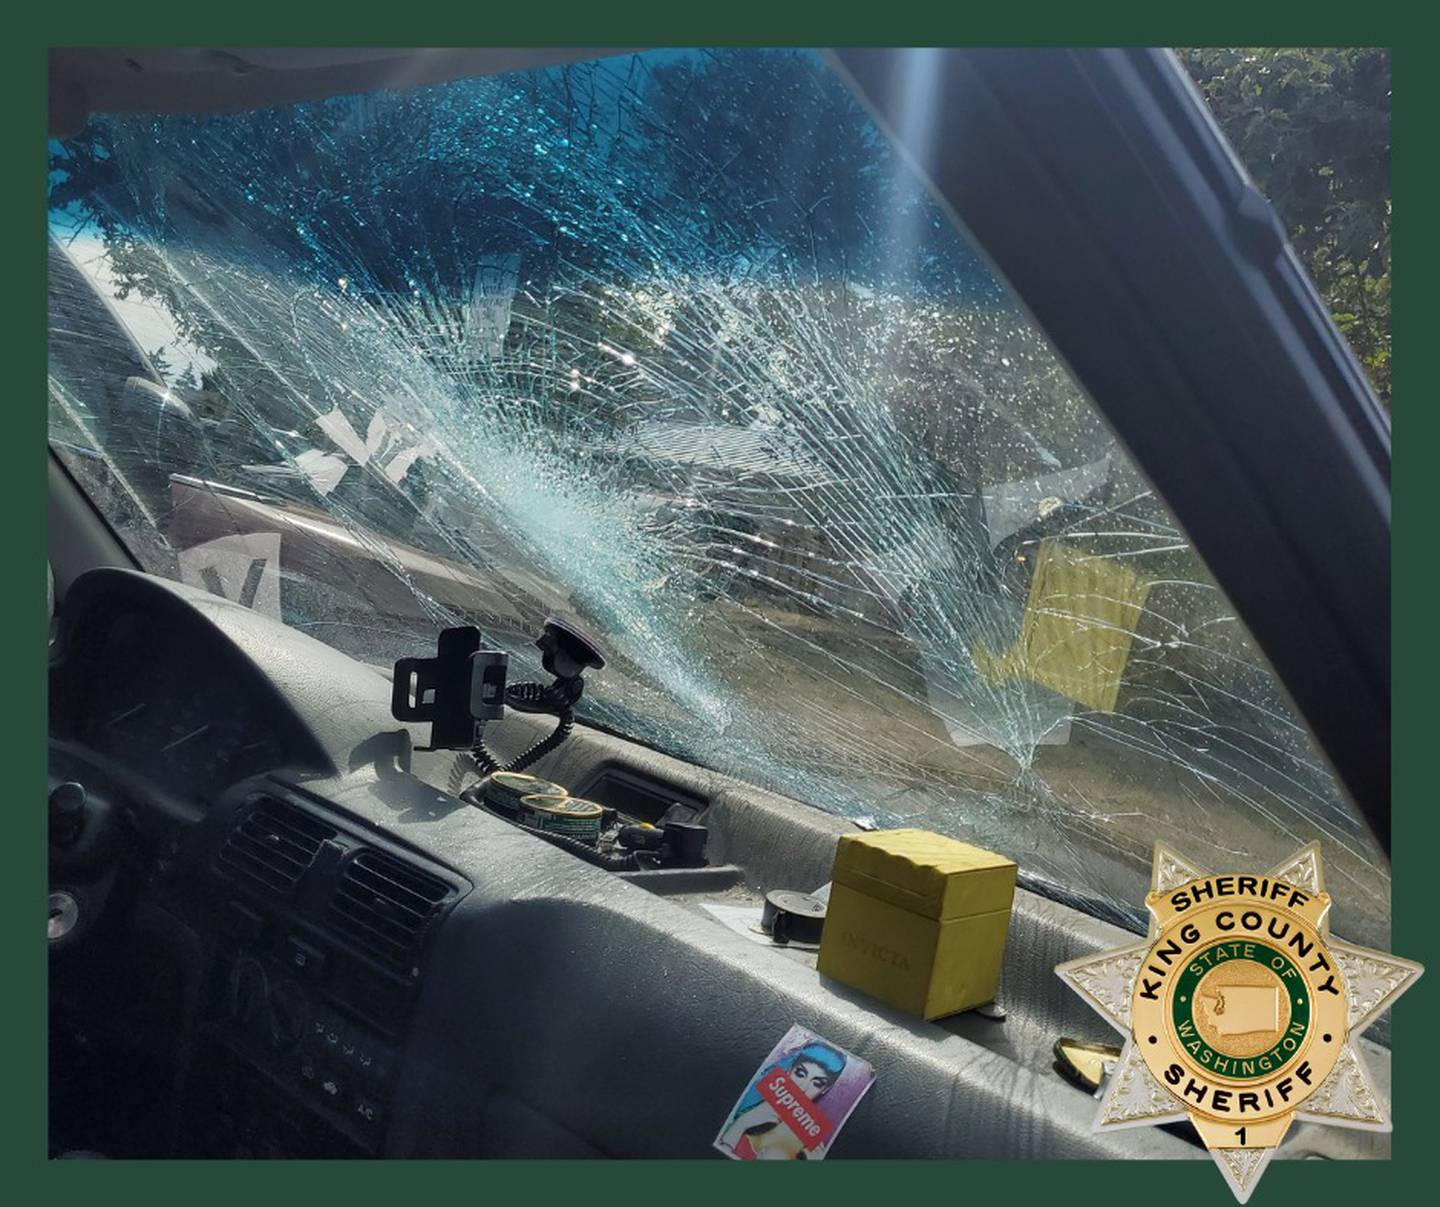 Shattered windshield on DUI suspect's car